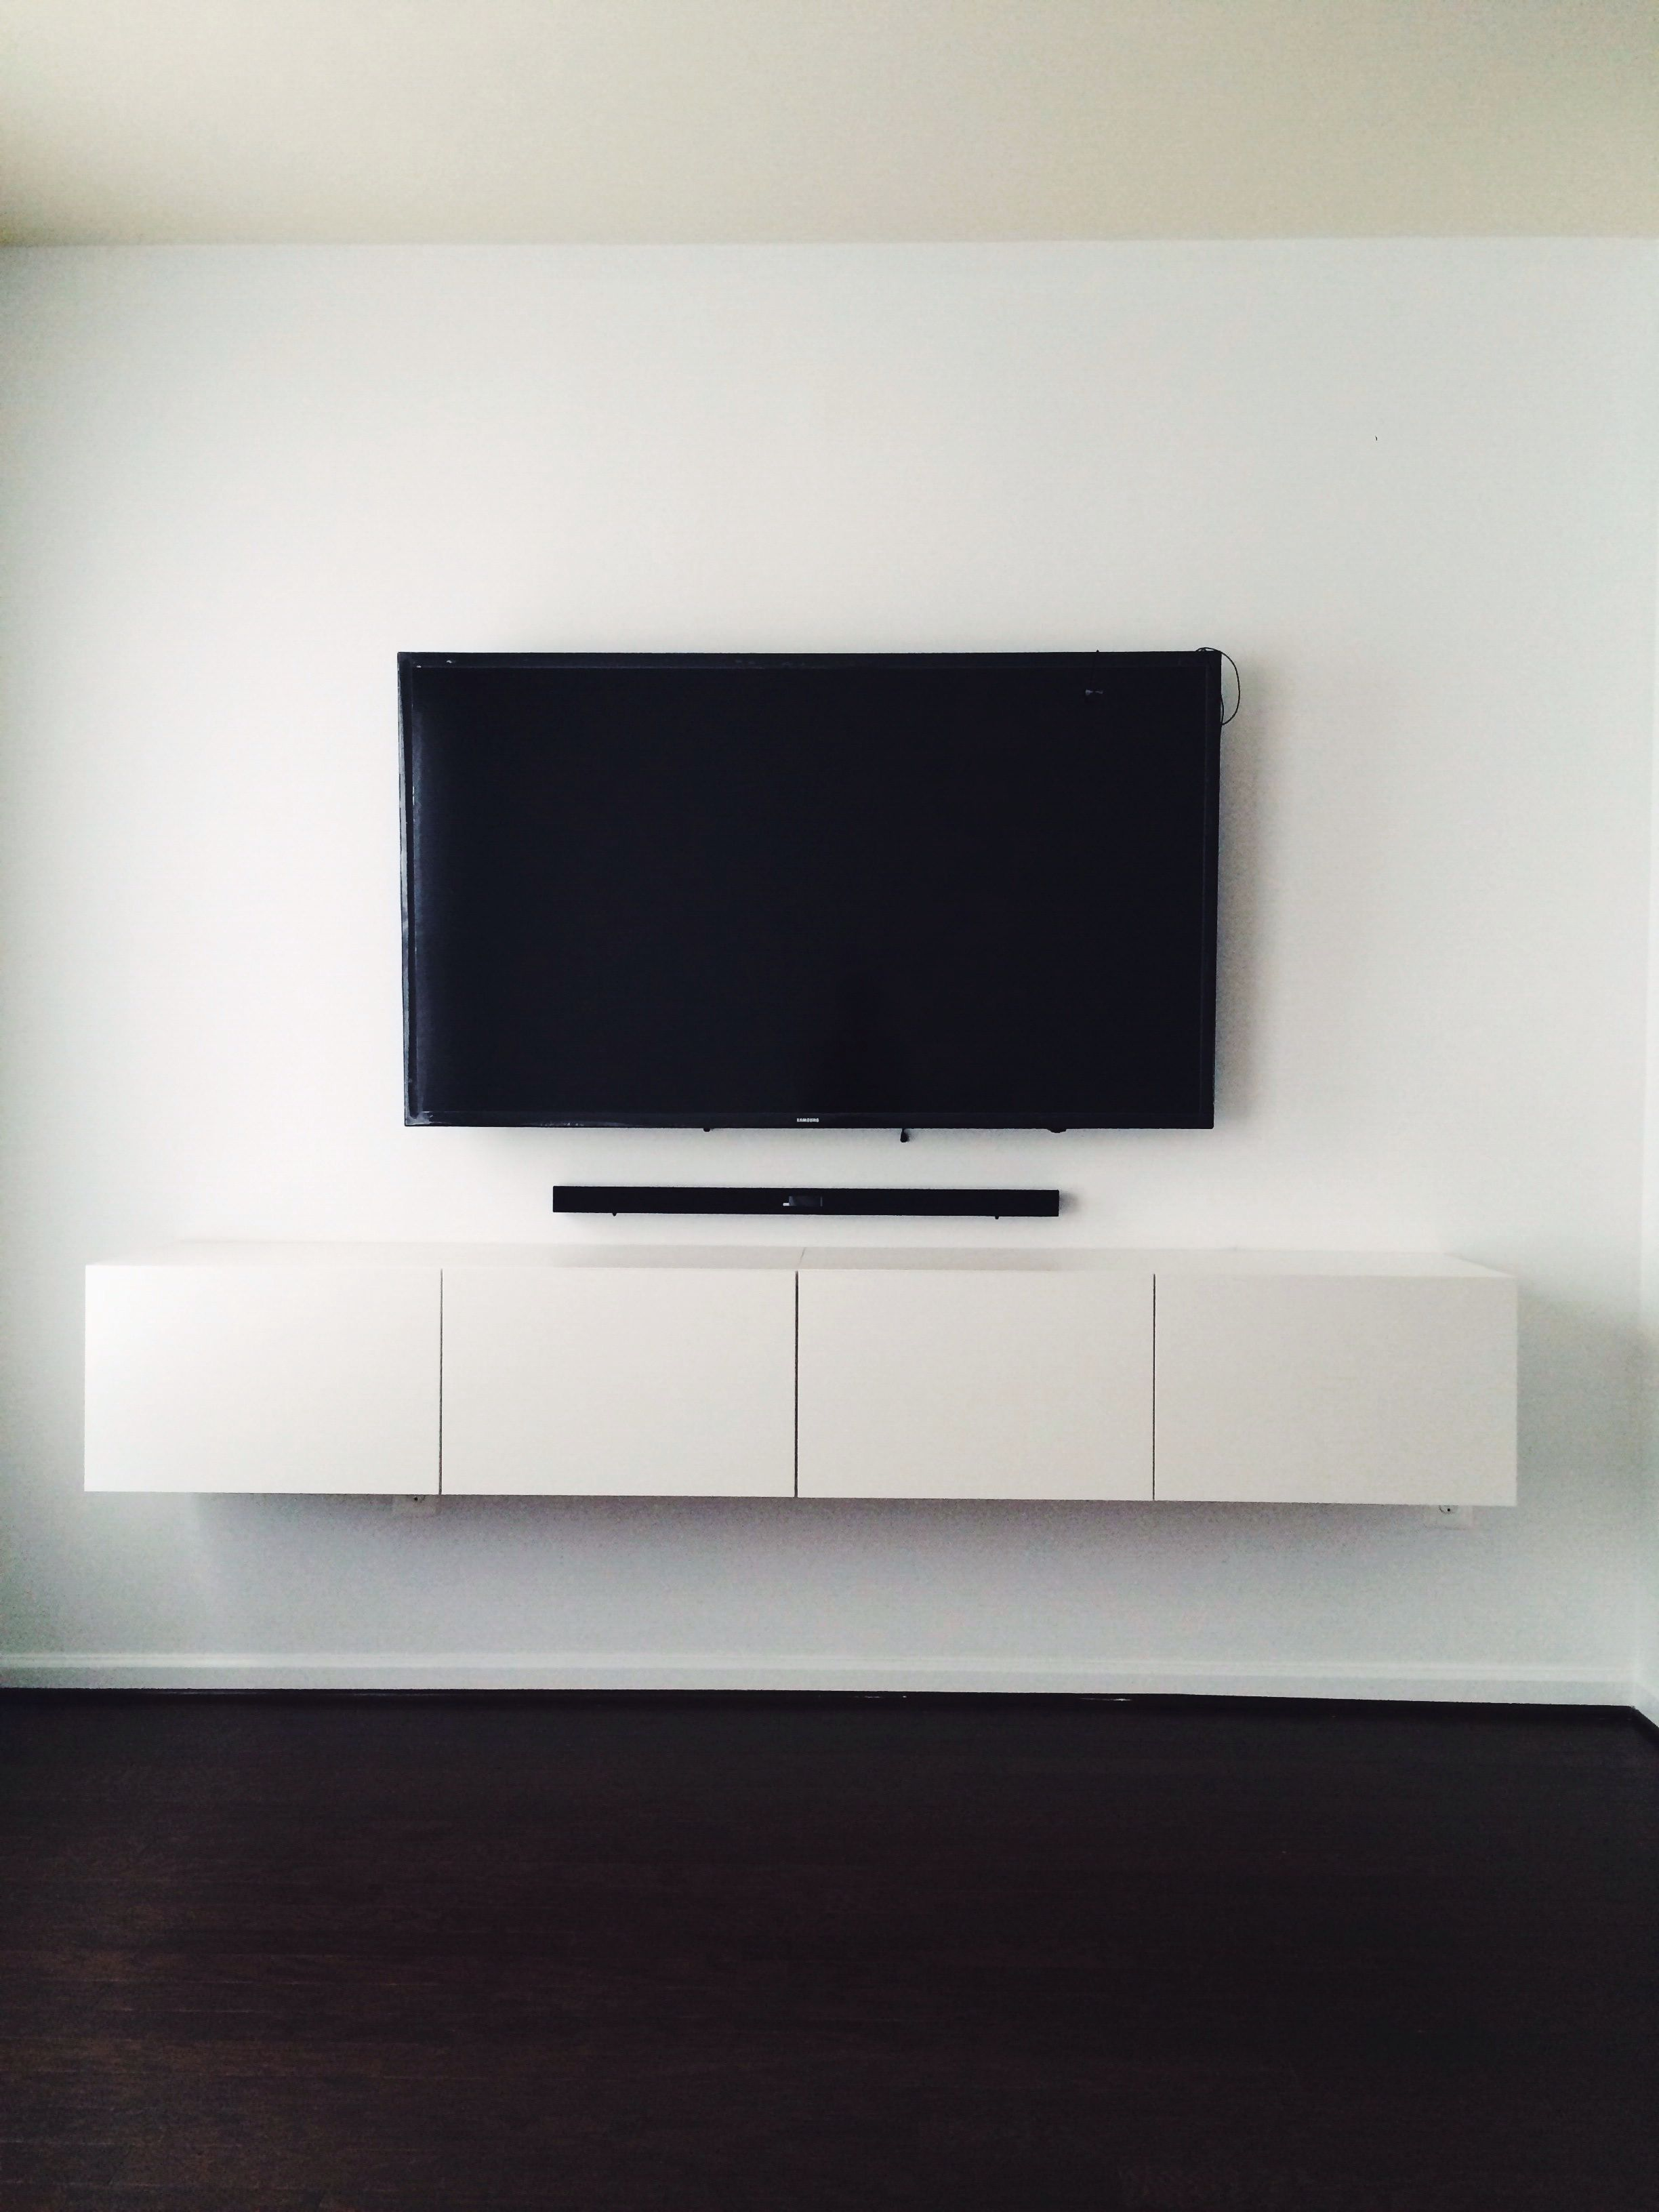 Ikea Besta Media Console Mounted Tv With Hidden Wires